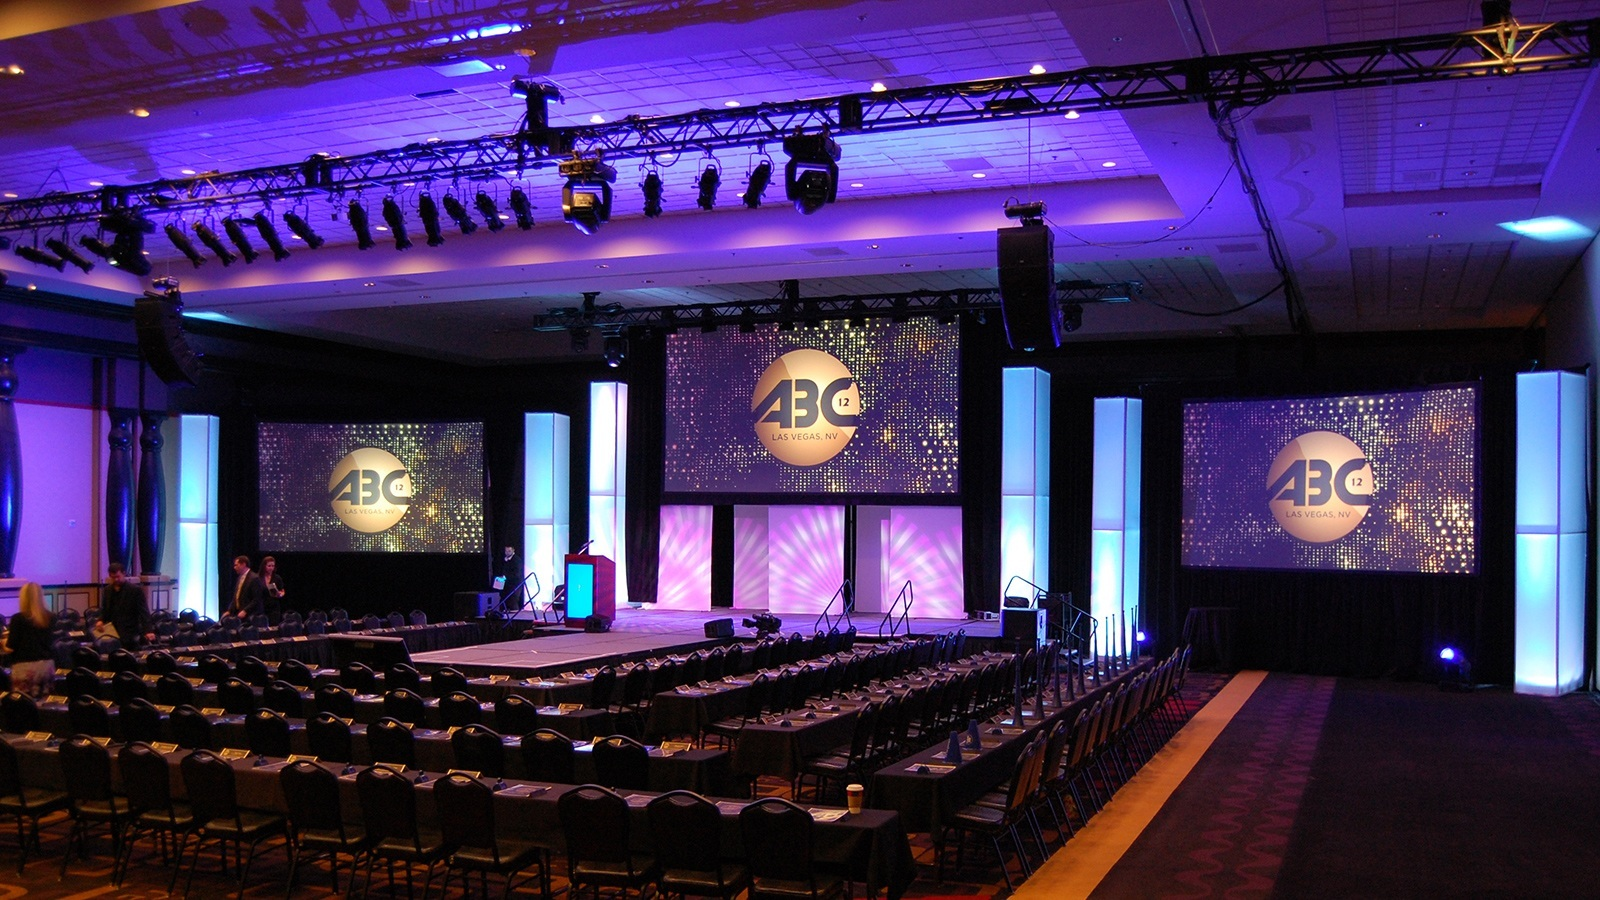 Trade Show Exhibit And Event Services Avp